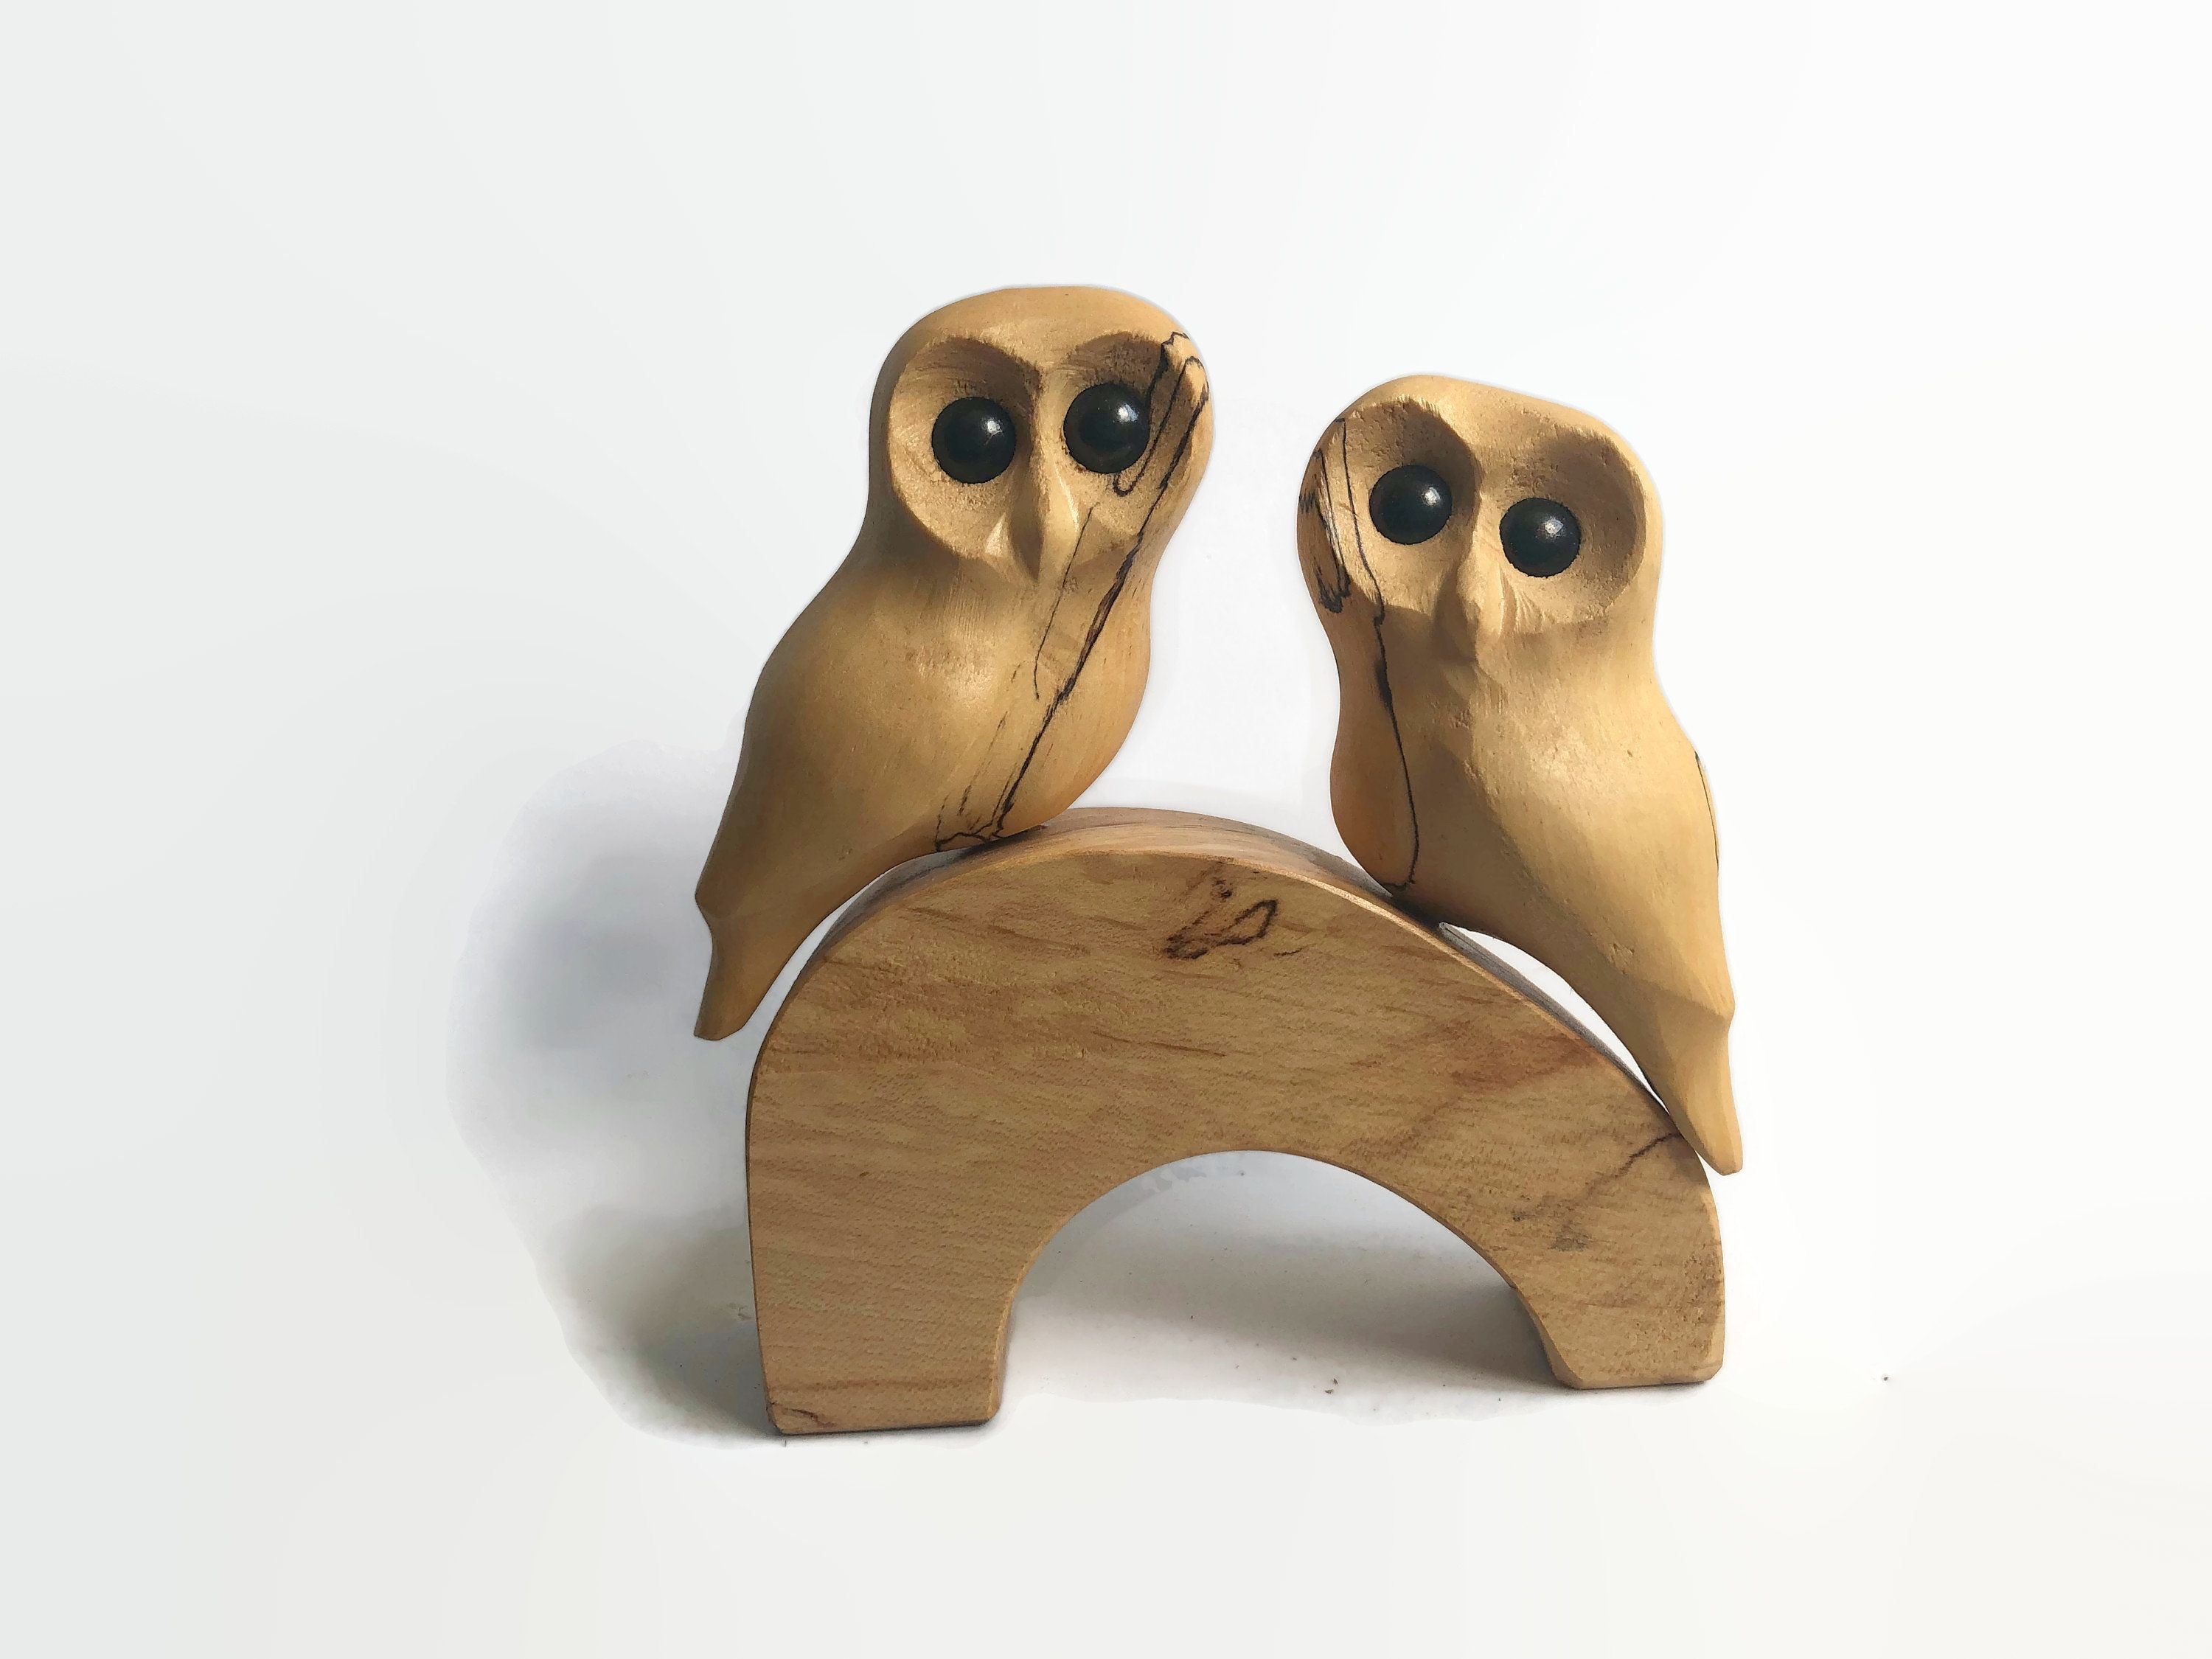 anniversary gifts for him romantic gifts for her Owls wood carving